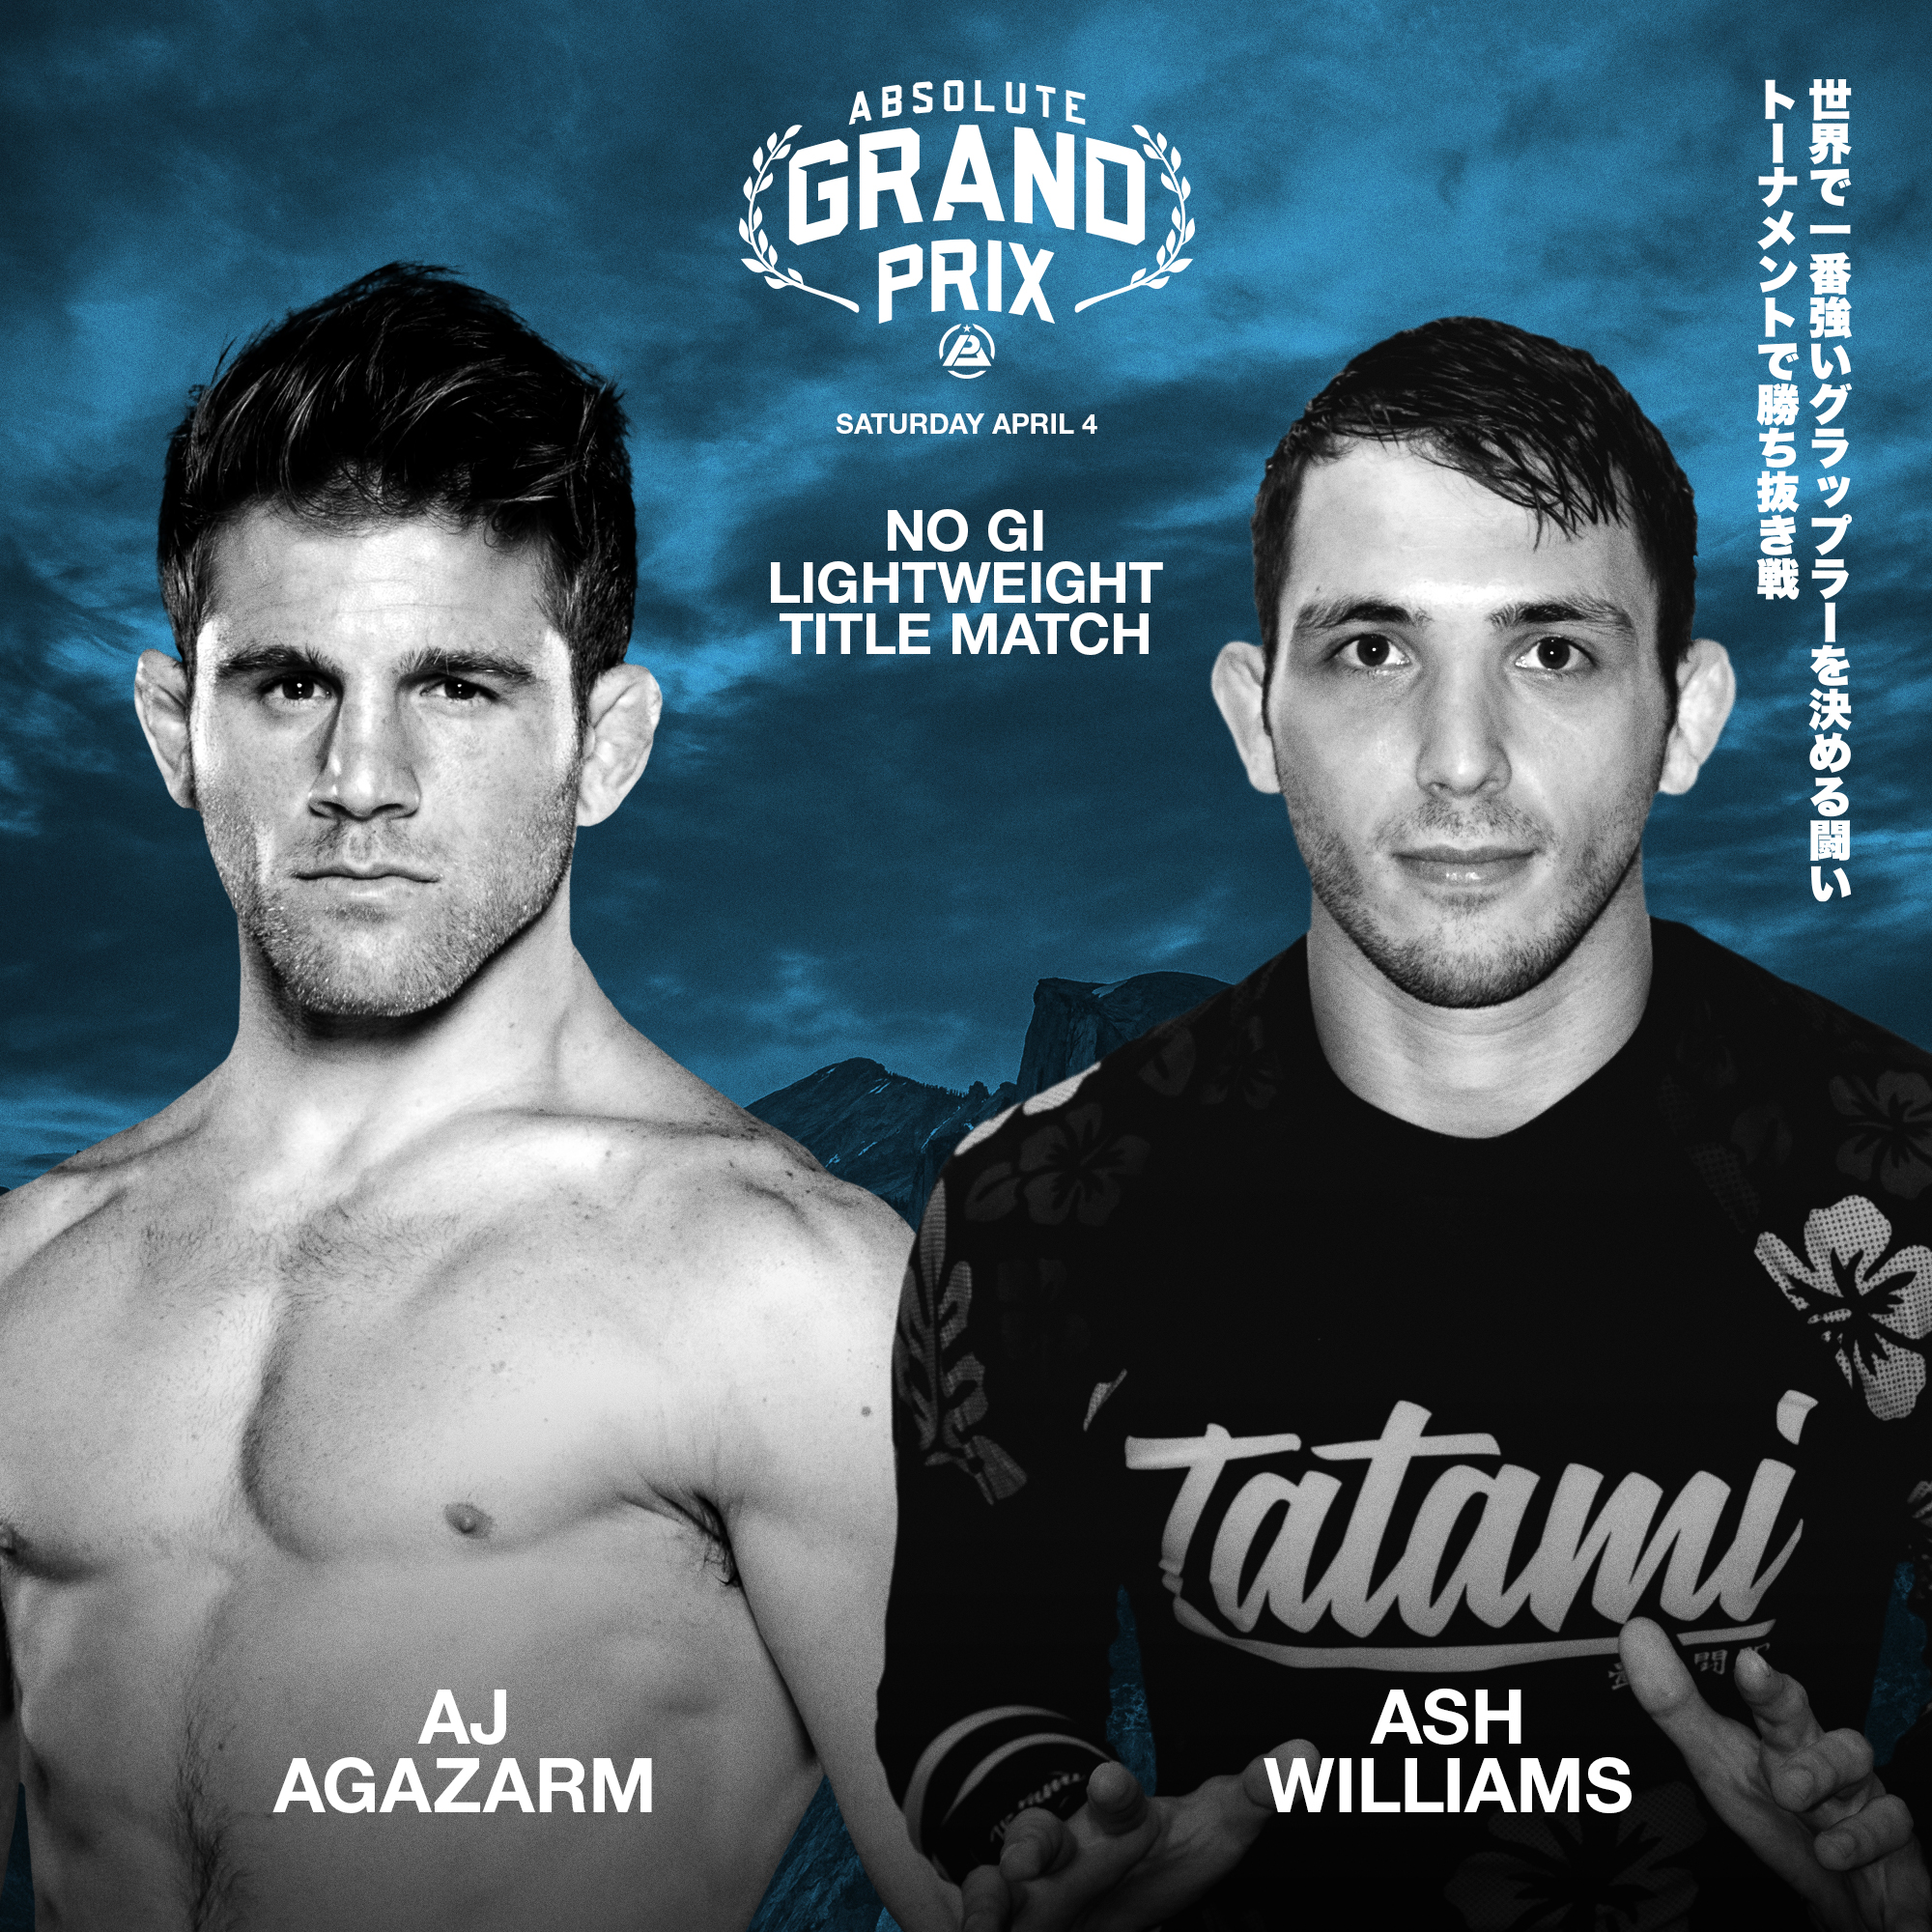 Polaris 13 – AJ Agazarm VS Ash Williams